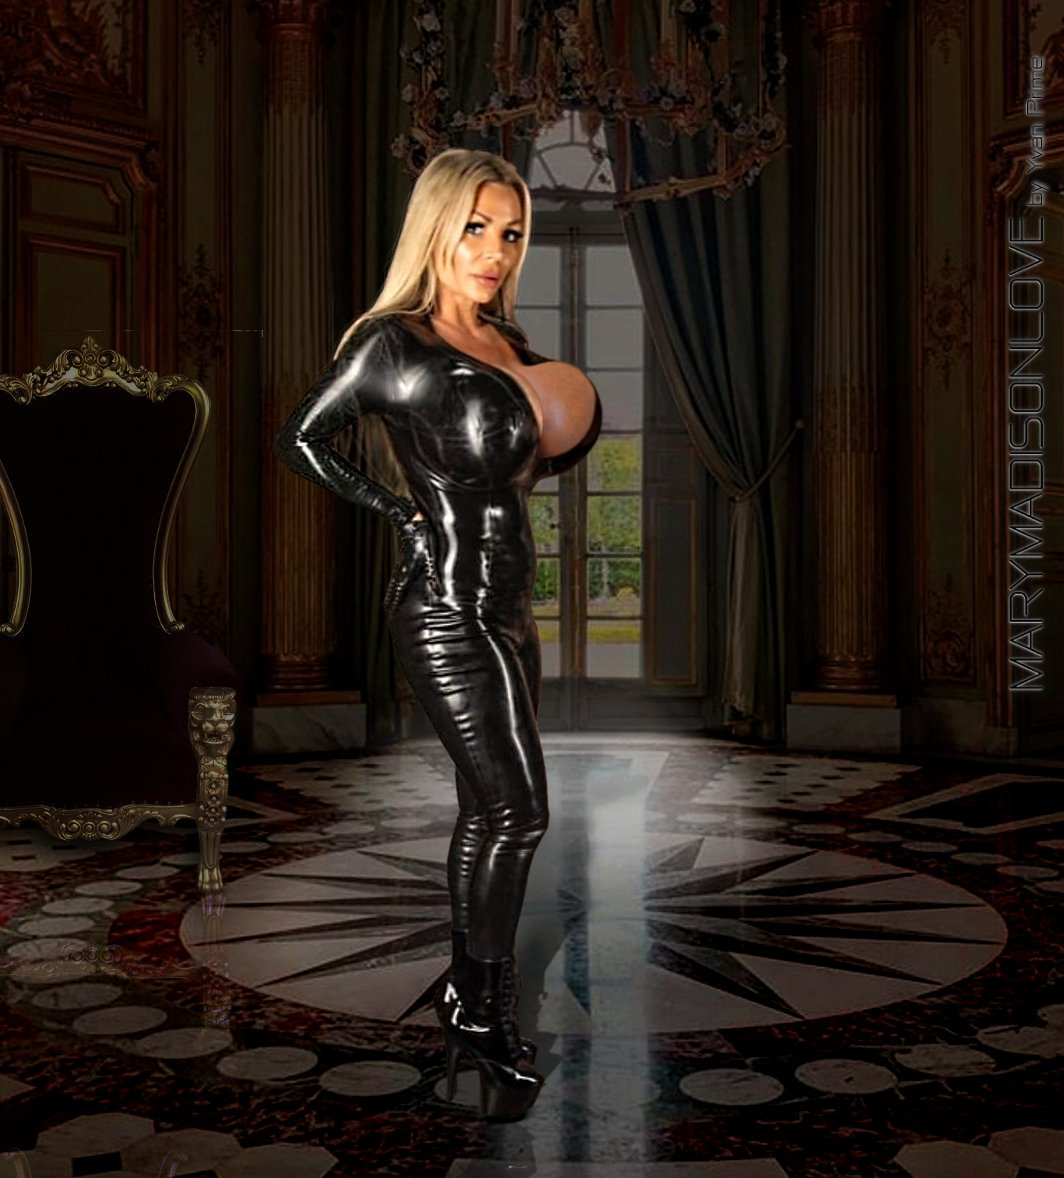 Mary ... Im not really a fan of latex, but on you .... it takes another dimension! Your body, your curves are so perfect! ... you are incredibly beautiful! Check out Marys latest photos at the London Fetish party on onlysfans.com/marymadison and on patreon.com/marymadisonlove #latex